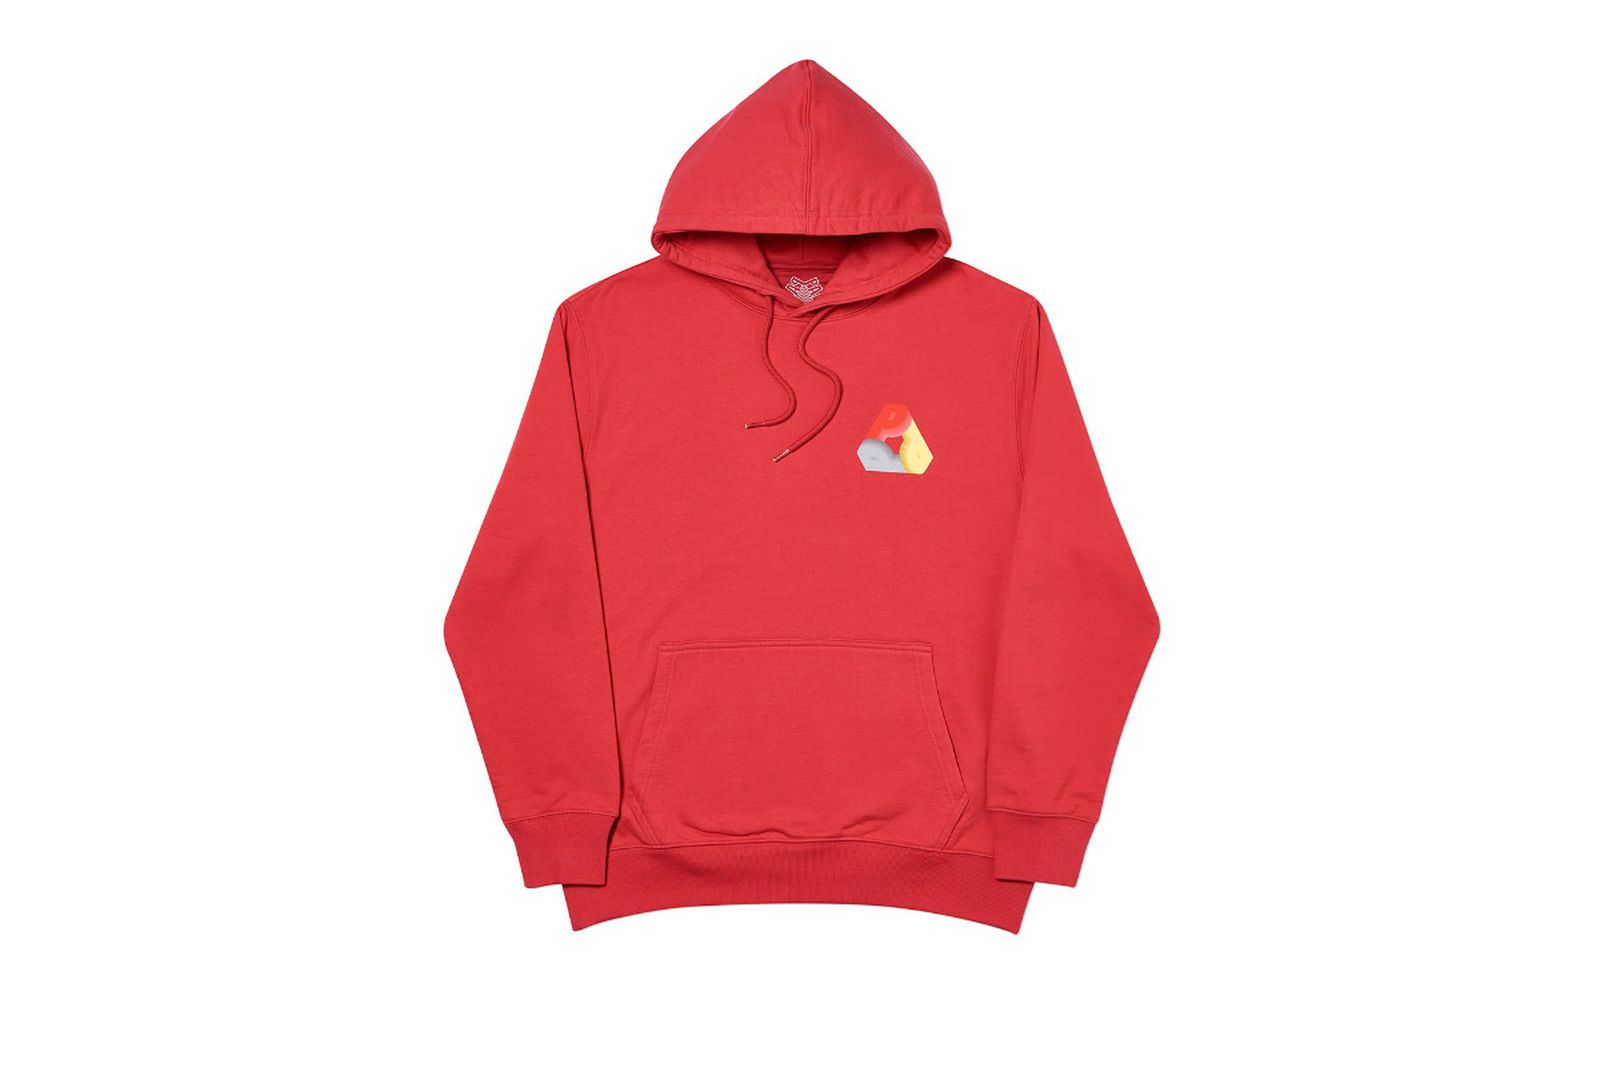 Palace 2019 Autumn Hood Phat P Red Front